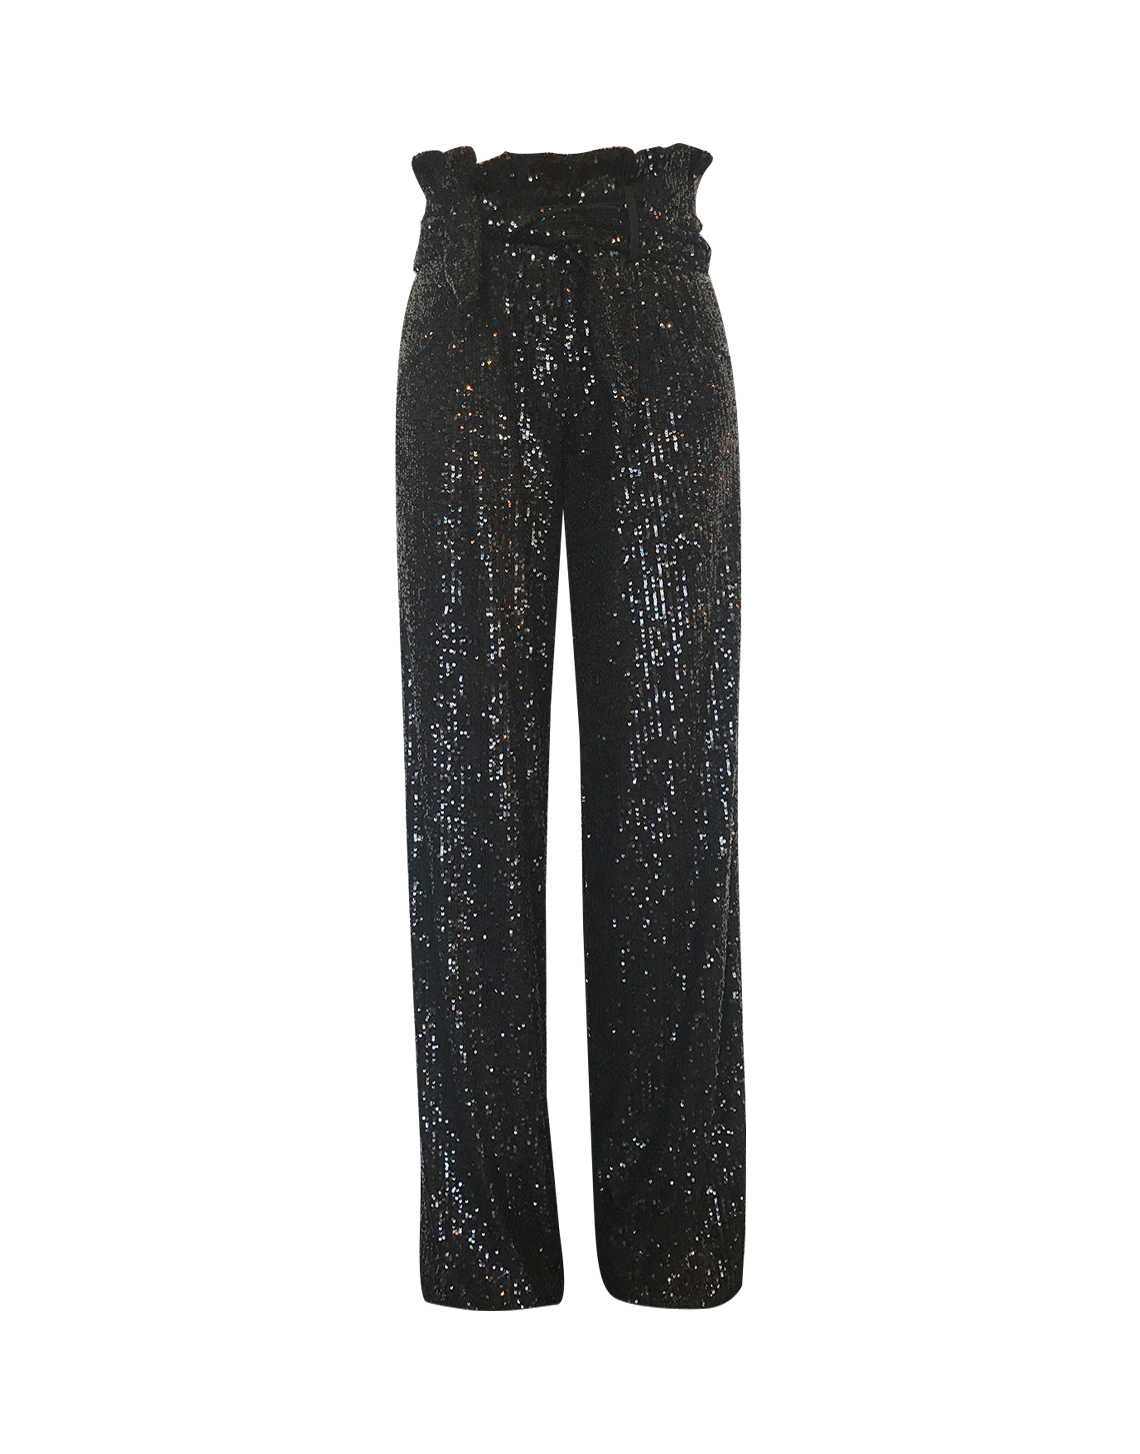 Iggy Pants - Sequins Black by Jessica K on curated-crowd.com